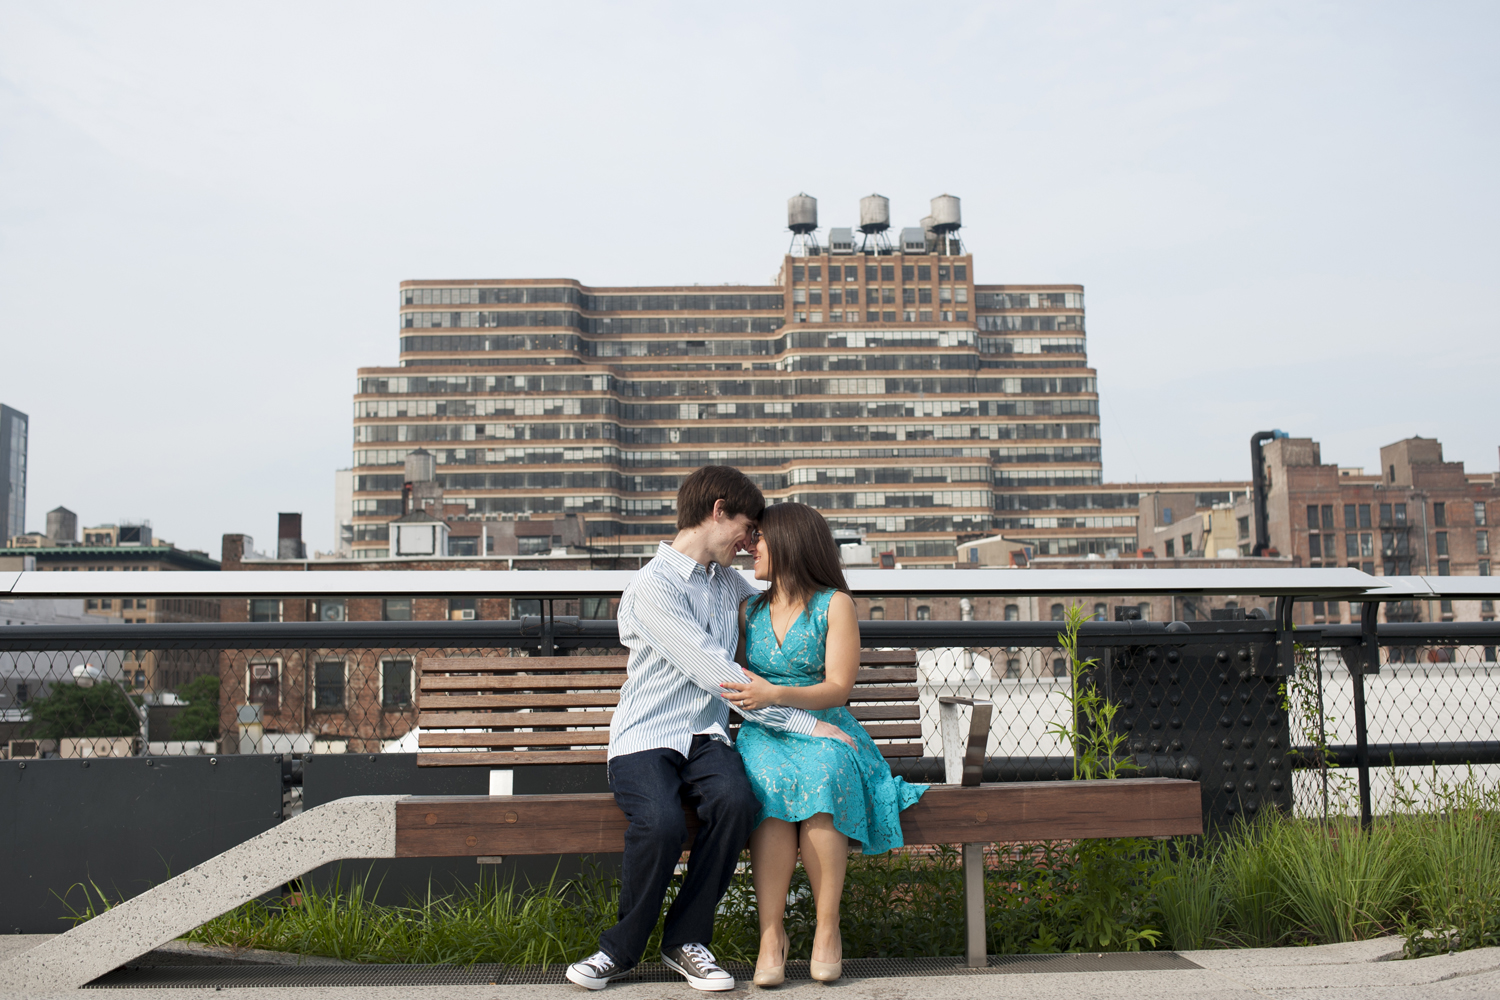 engagement session at The High Line, NYC. NYC wedding photographers